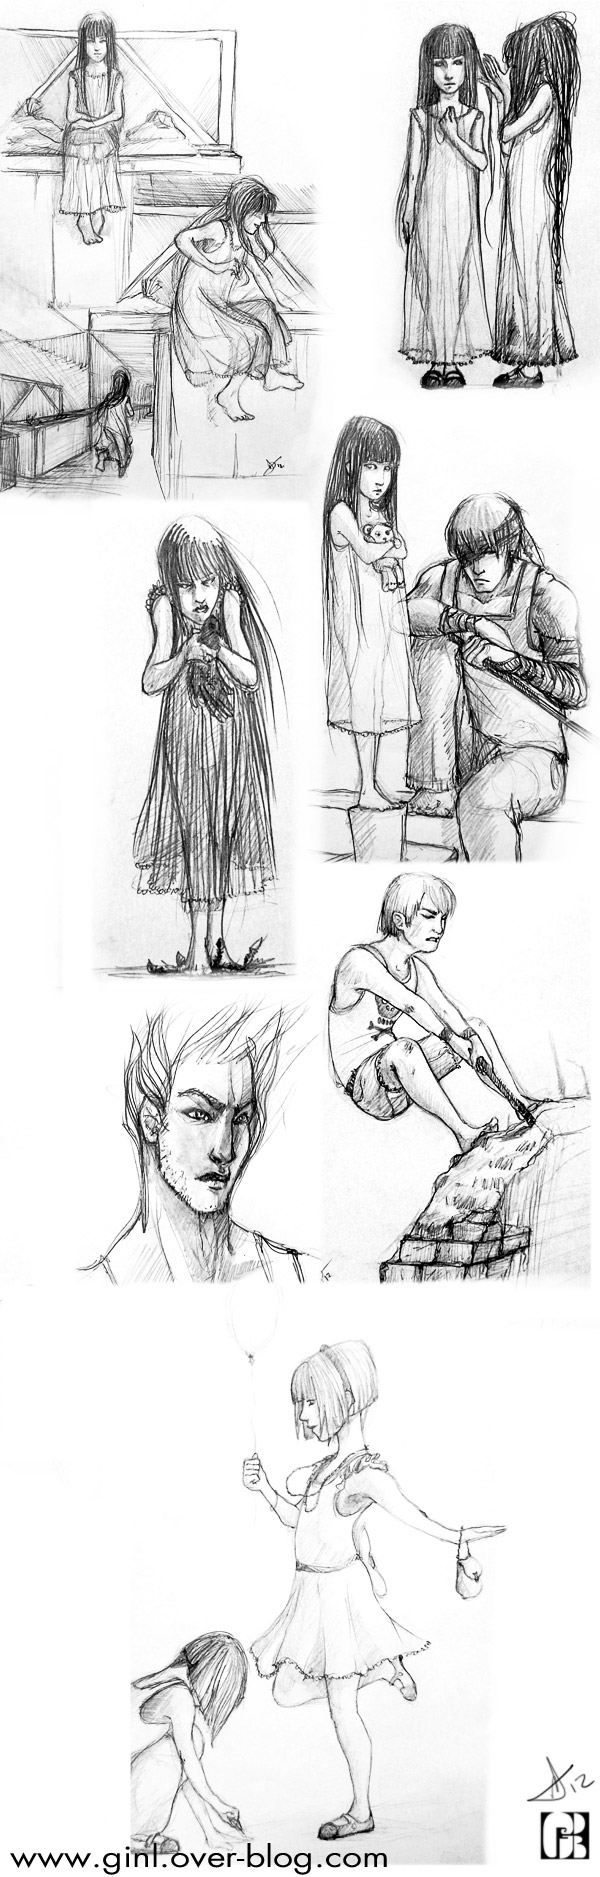 [ginL] illustrations and cie 08400ce245bdde7d3548e64c38b29a96-d5ebzh9